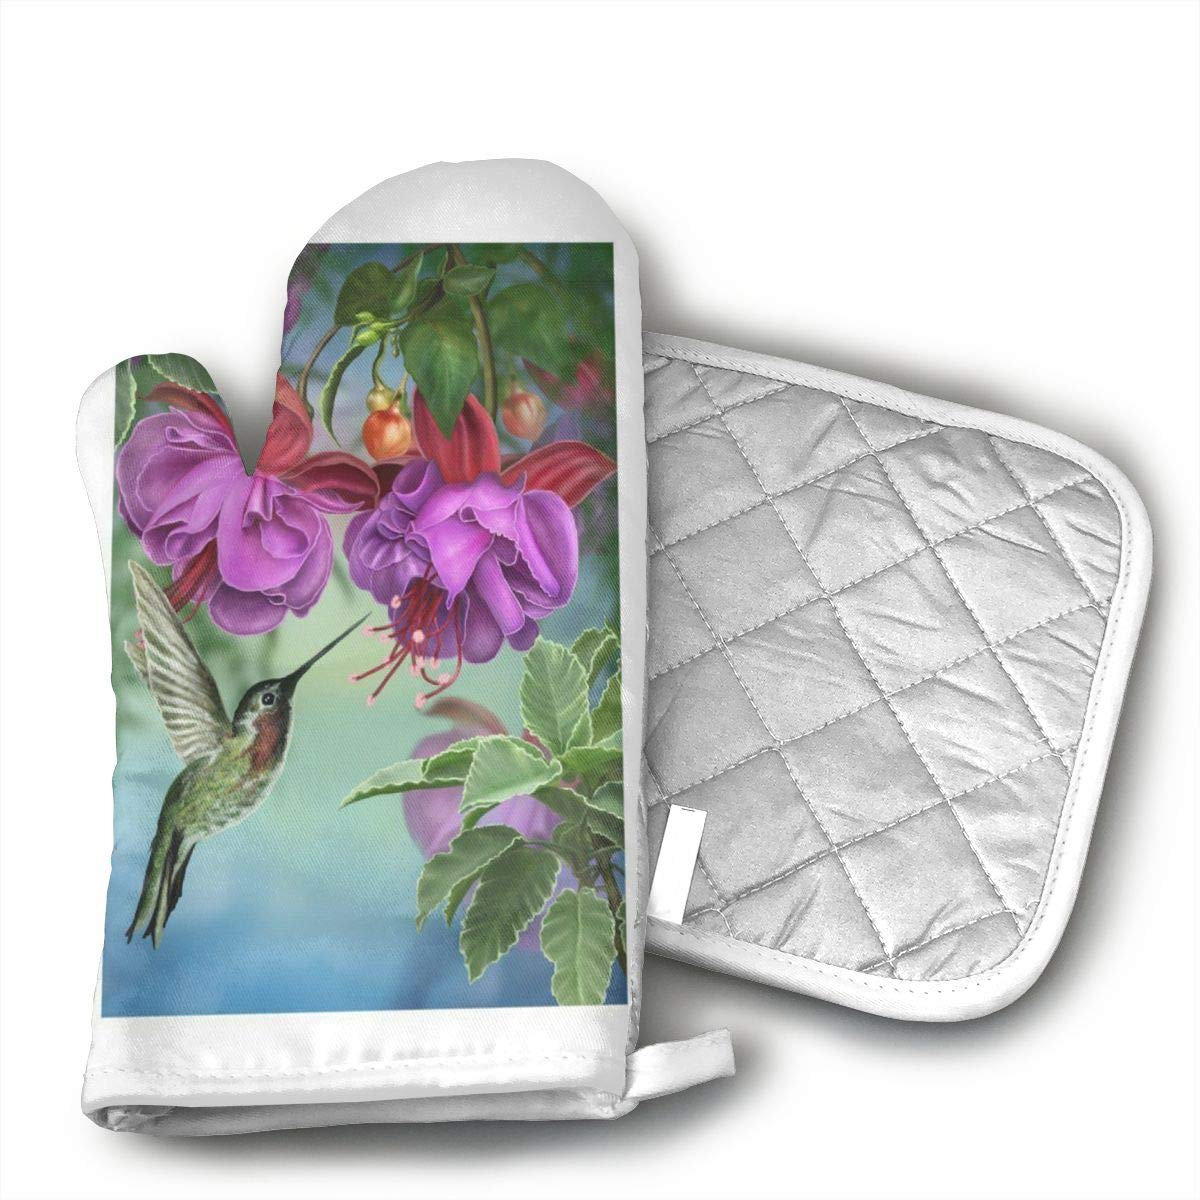 GUYDHL Spring Hummingbird Long Print for 2 Pair Oven Mitt and Pot Holder for Cooking,Barbecue,Baking,Grilling